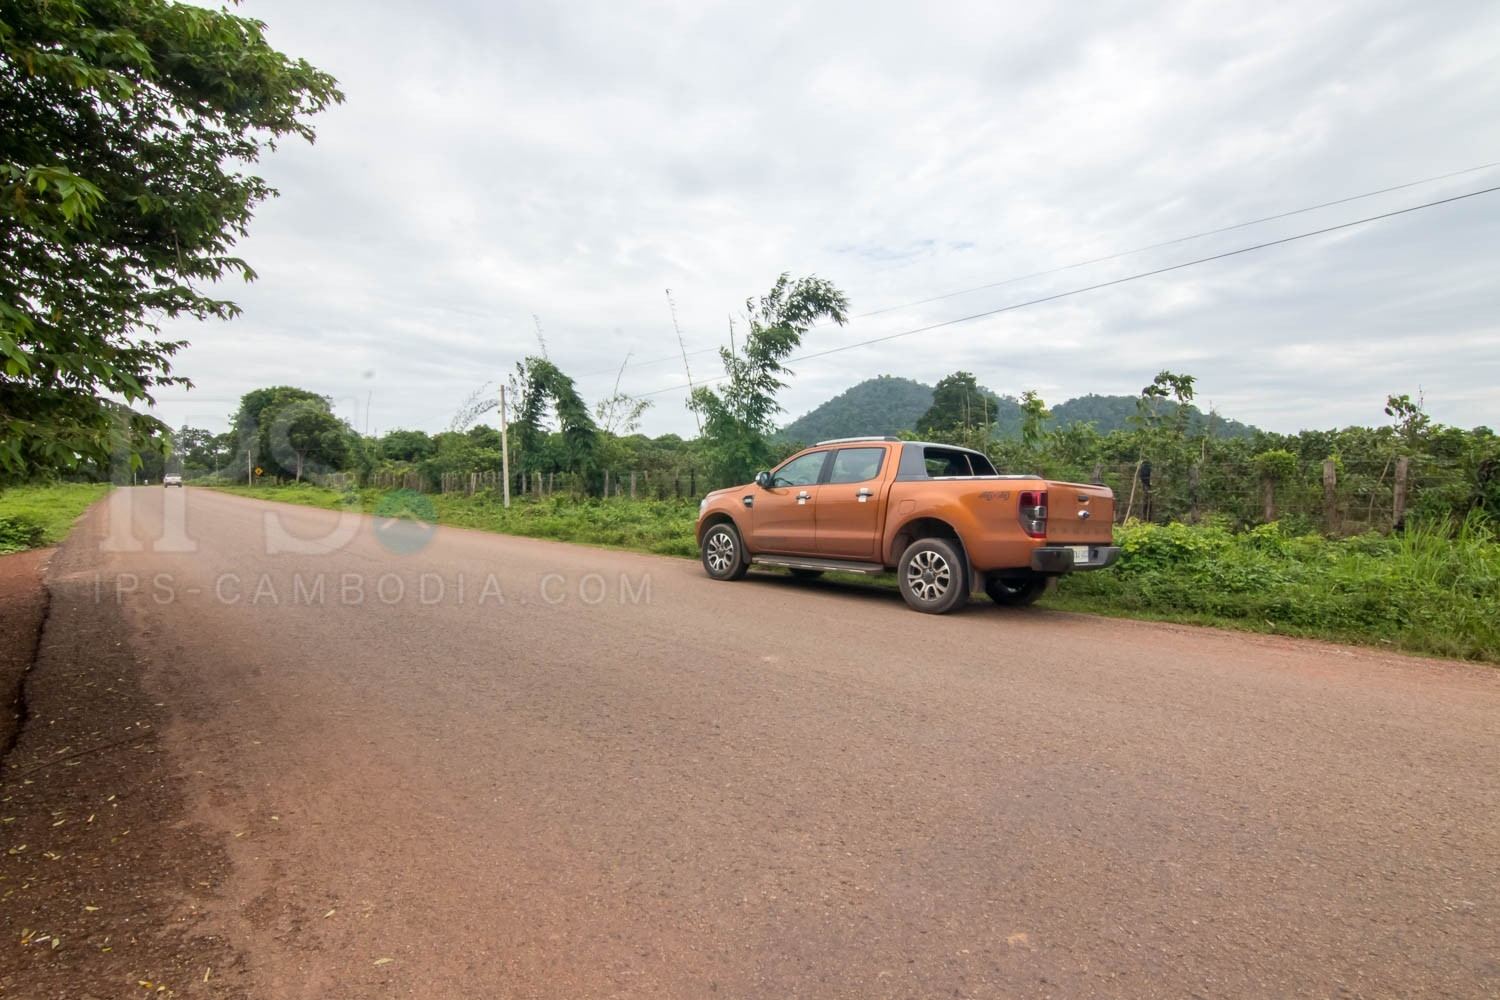 120,000 sq.m.  Land For Sale - Banteay Srei, Siem Reap